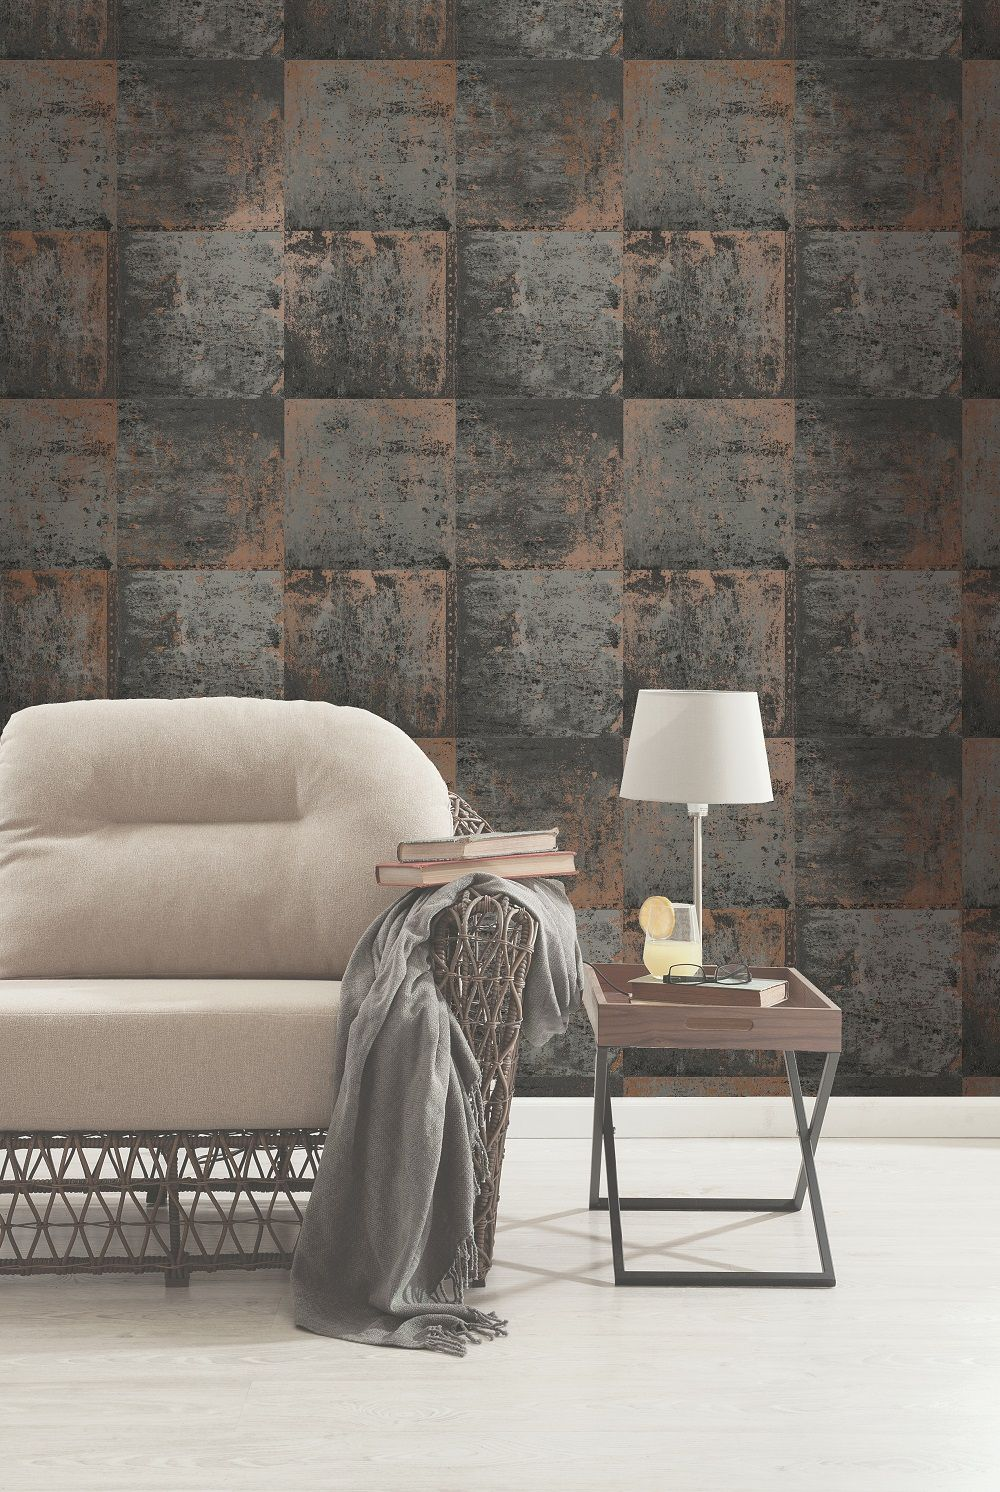 Holden Decor Metal Panel Copper Wallpaper Metallic